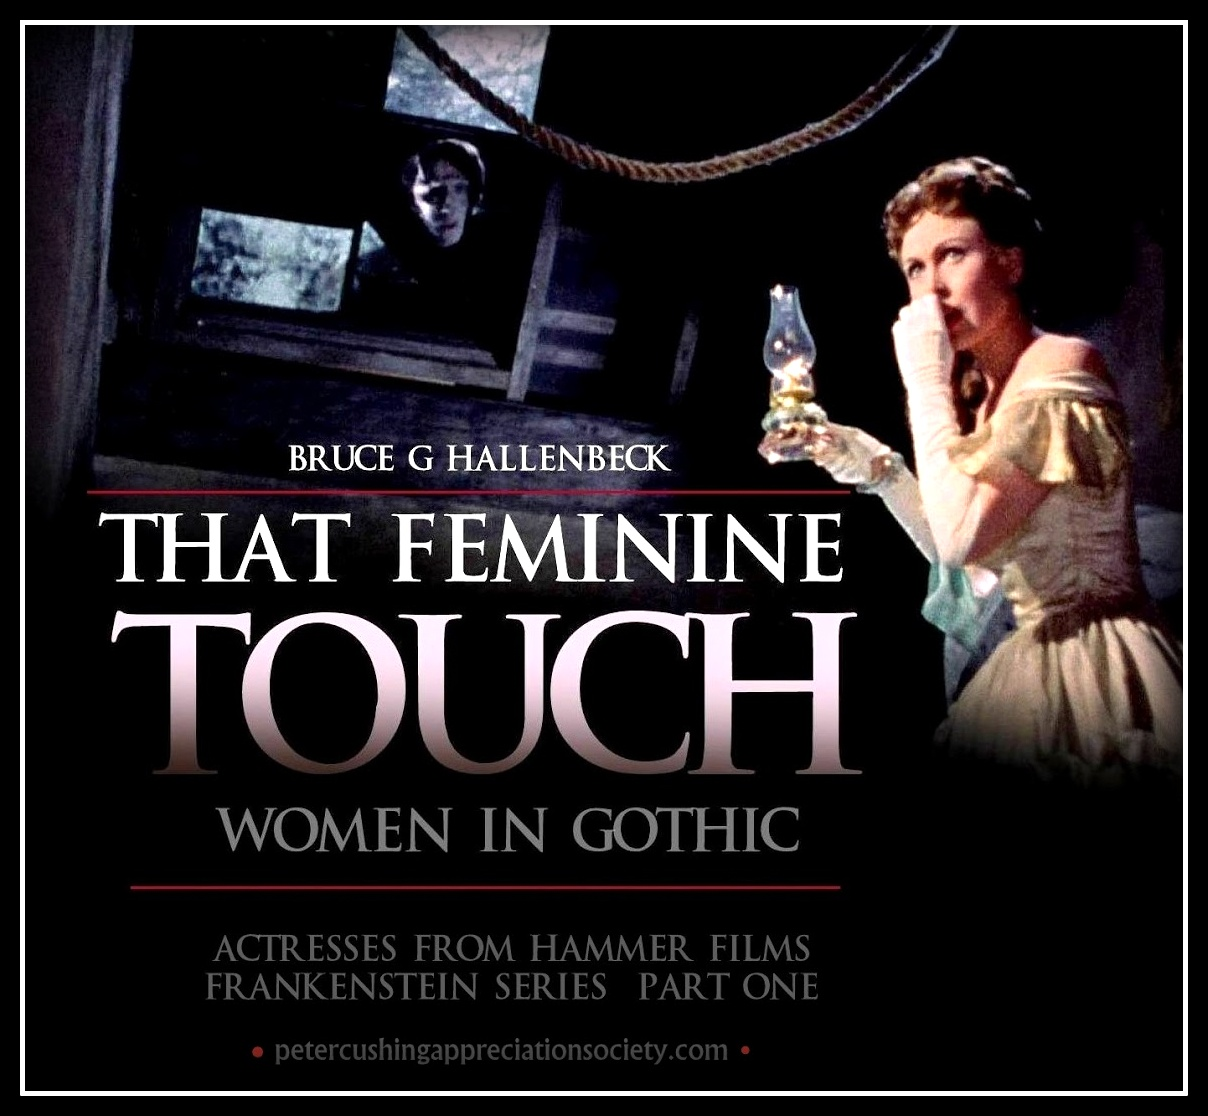 BRUCE HALLENBECK'S 'THAT FEMININE TOUCH'